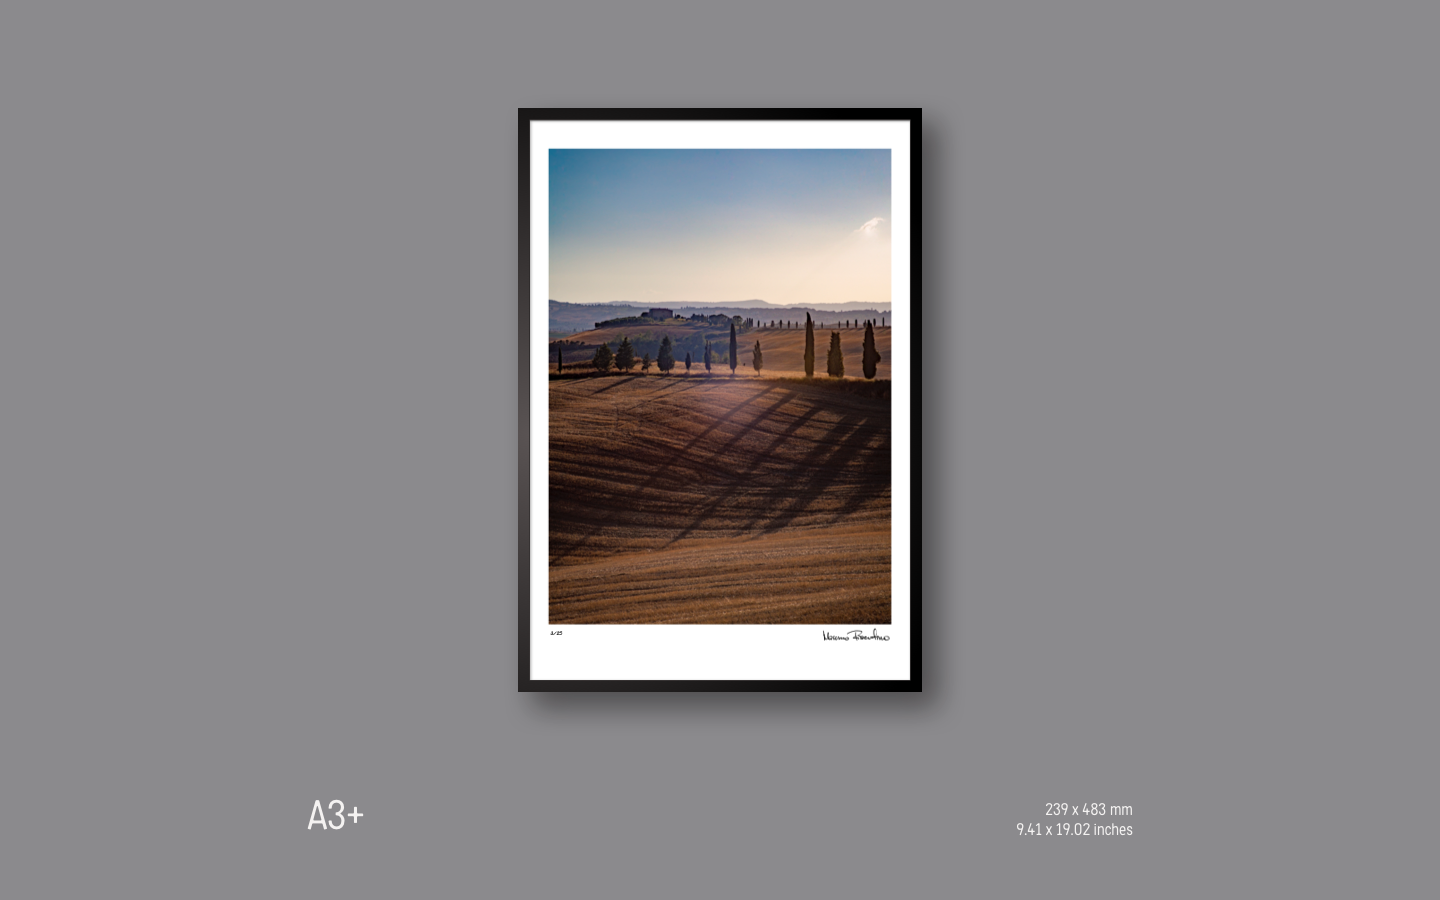 Image preview Standalone A3+.png